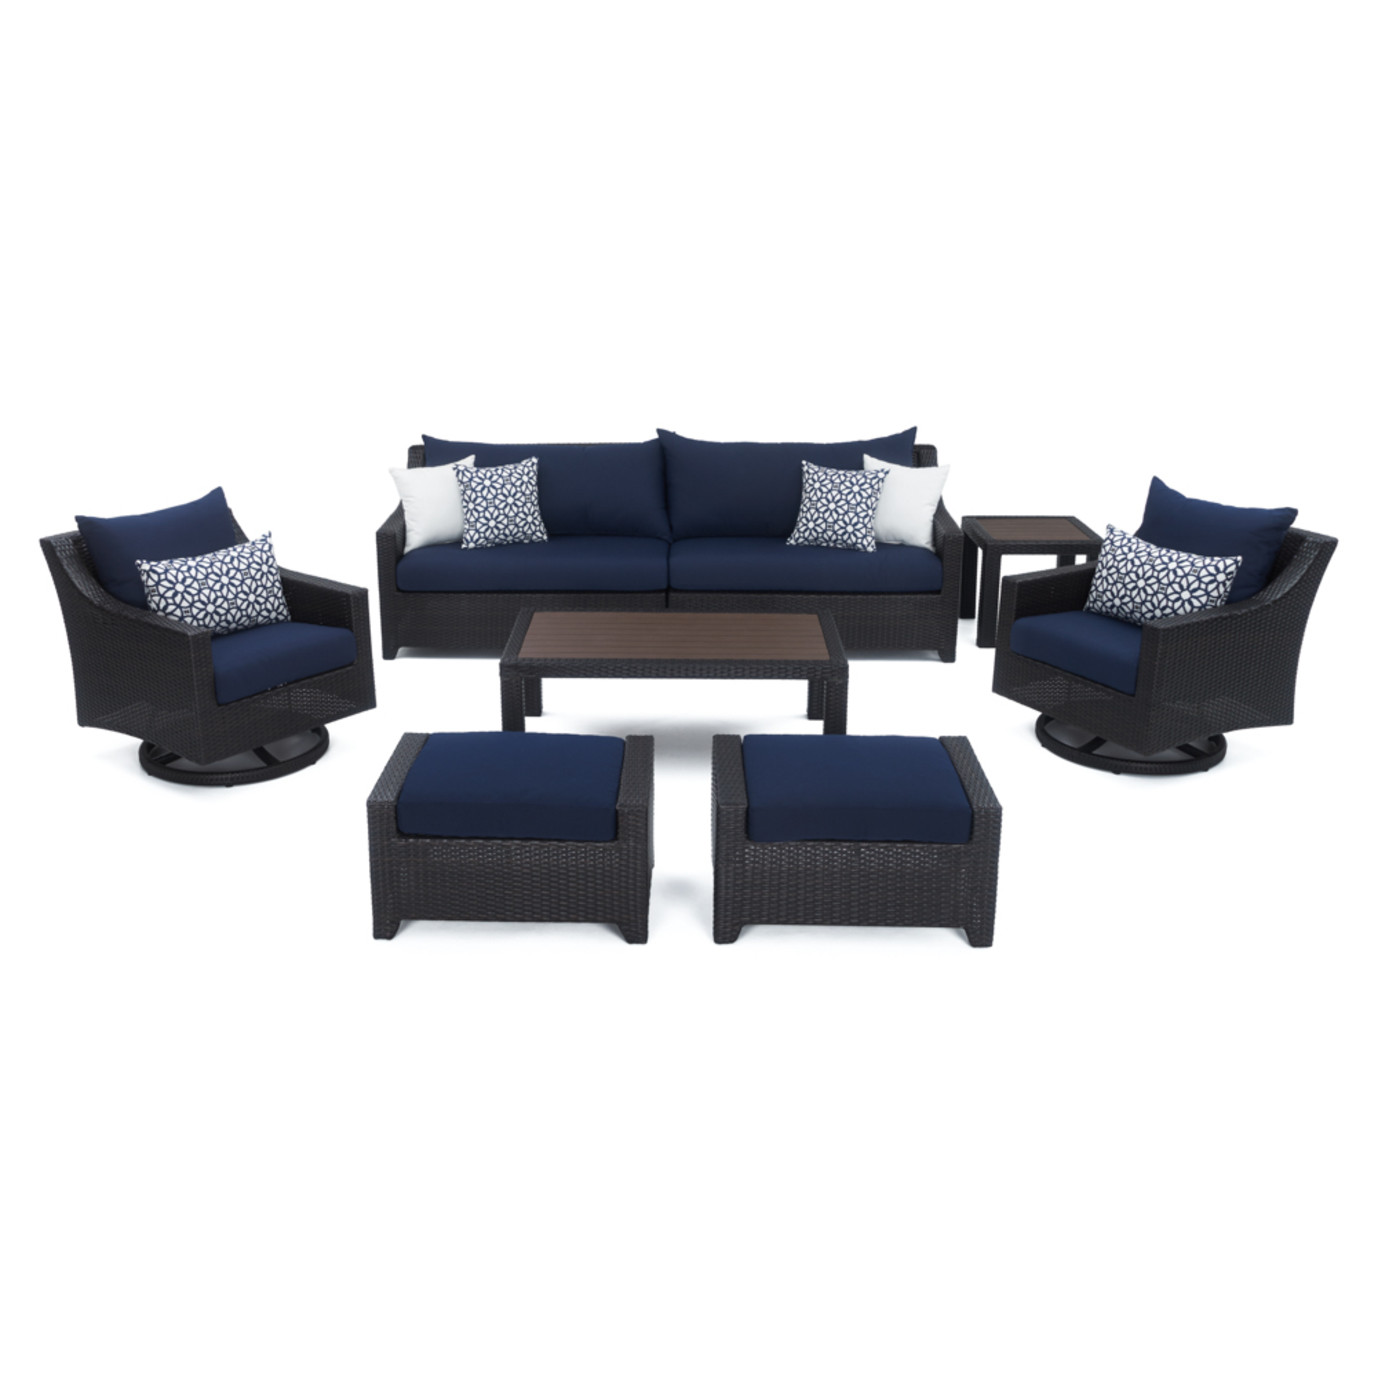 Deco™ Deluxe 8pc Sofa & Club Chair Set - Navy Blue